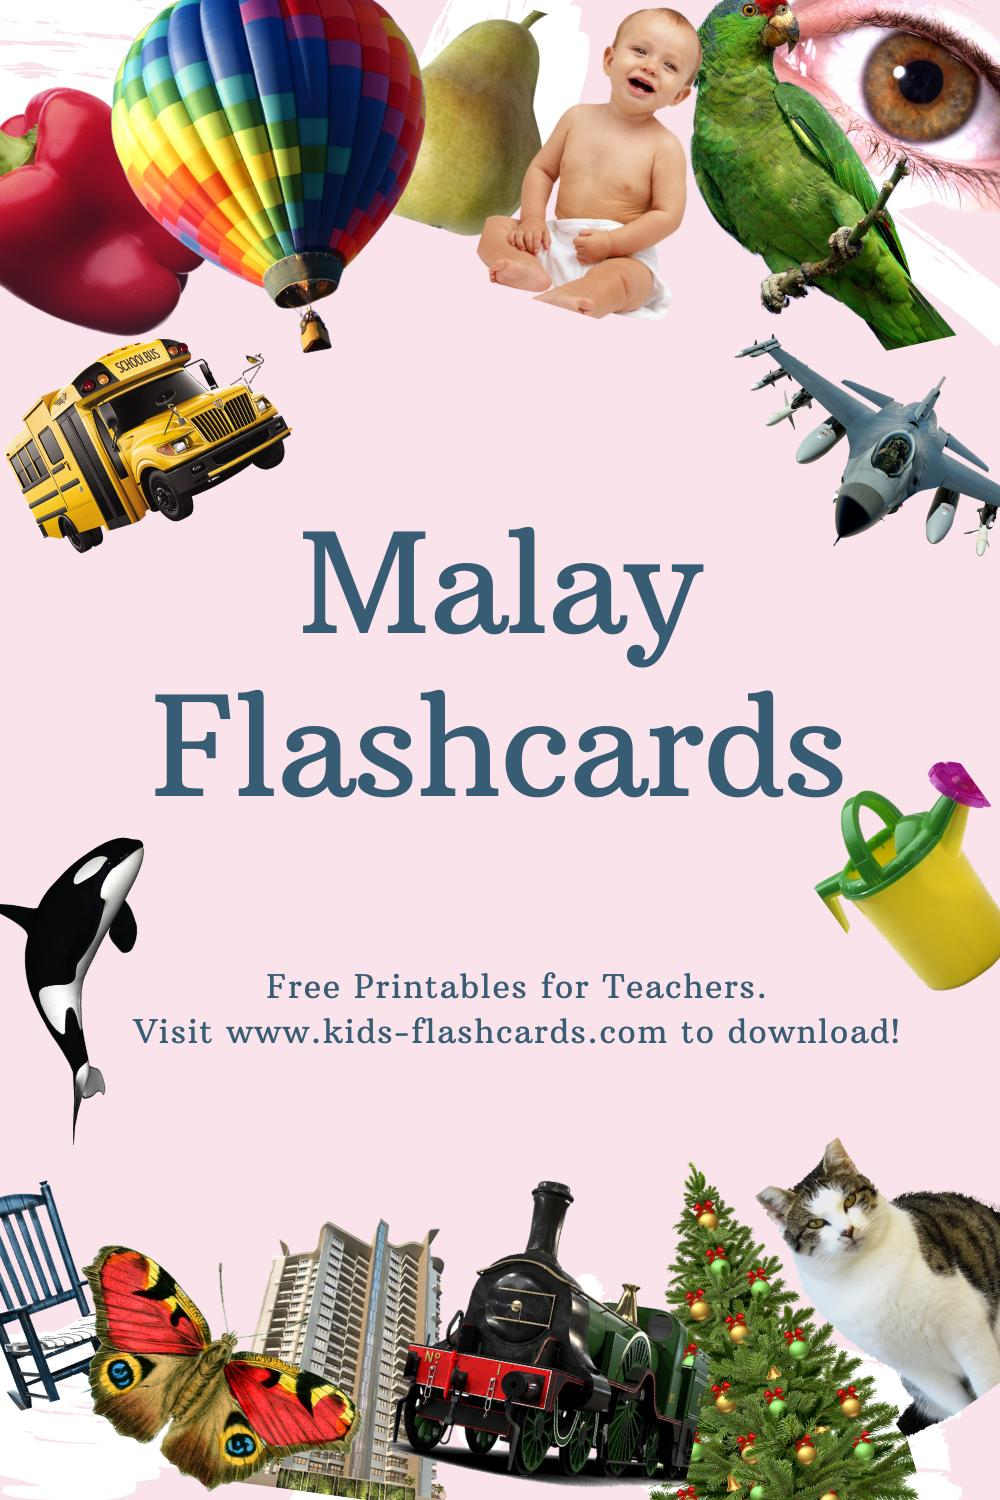 Worksheets to learn Malay language